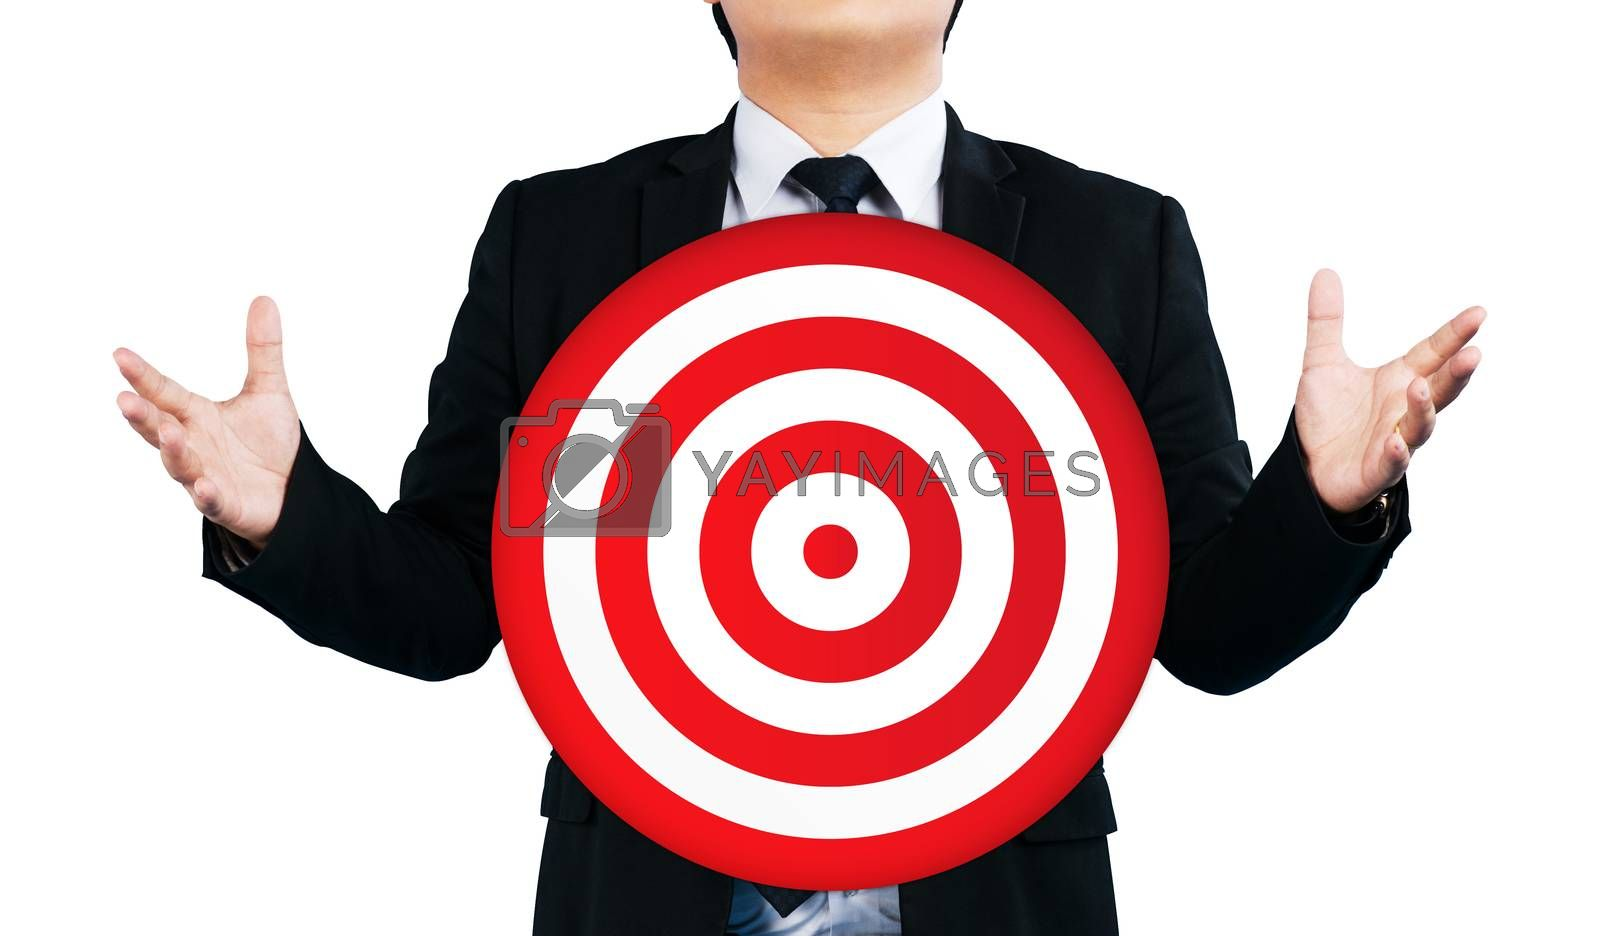 goals business man hand with thumb up and holding a dartboard isolated on white background / marketing concept